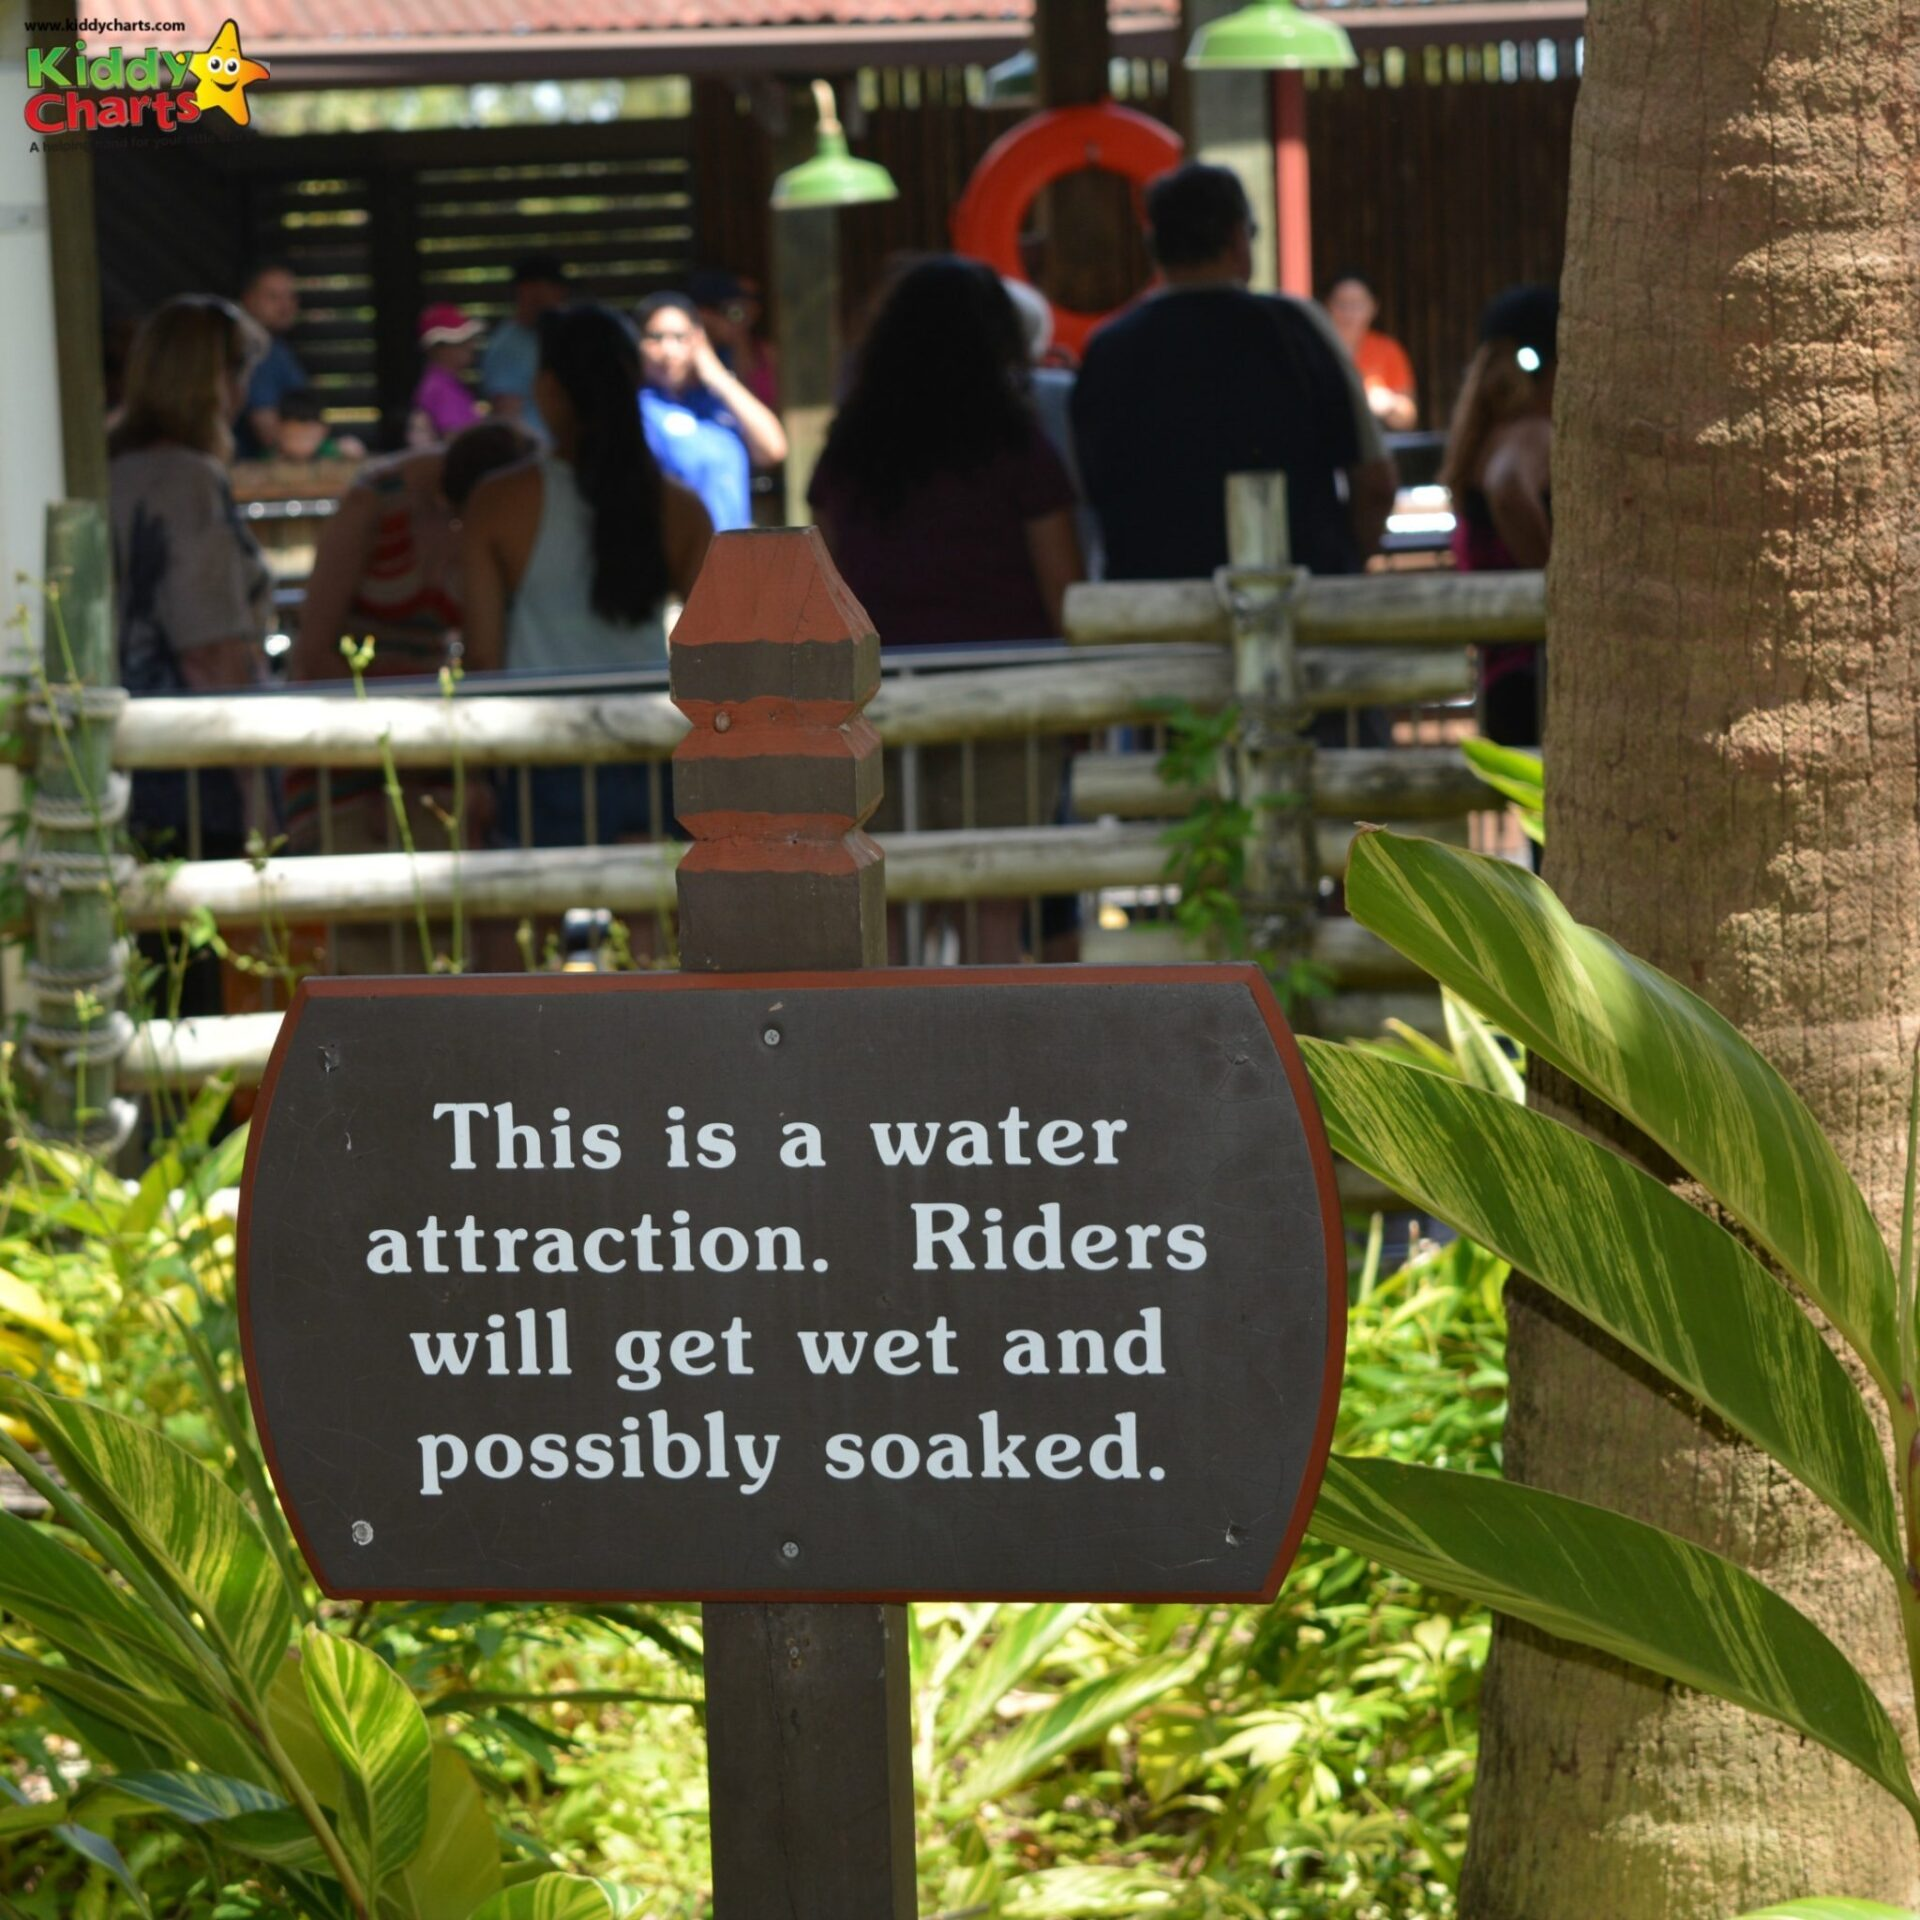 If you are in busch gardens with the kids - prepare to get wet!